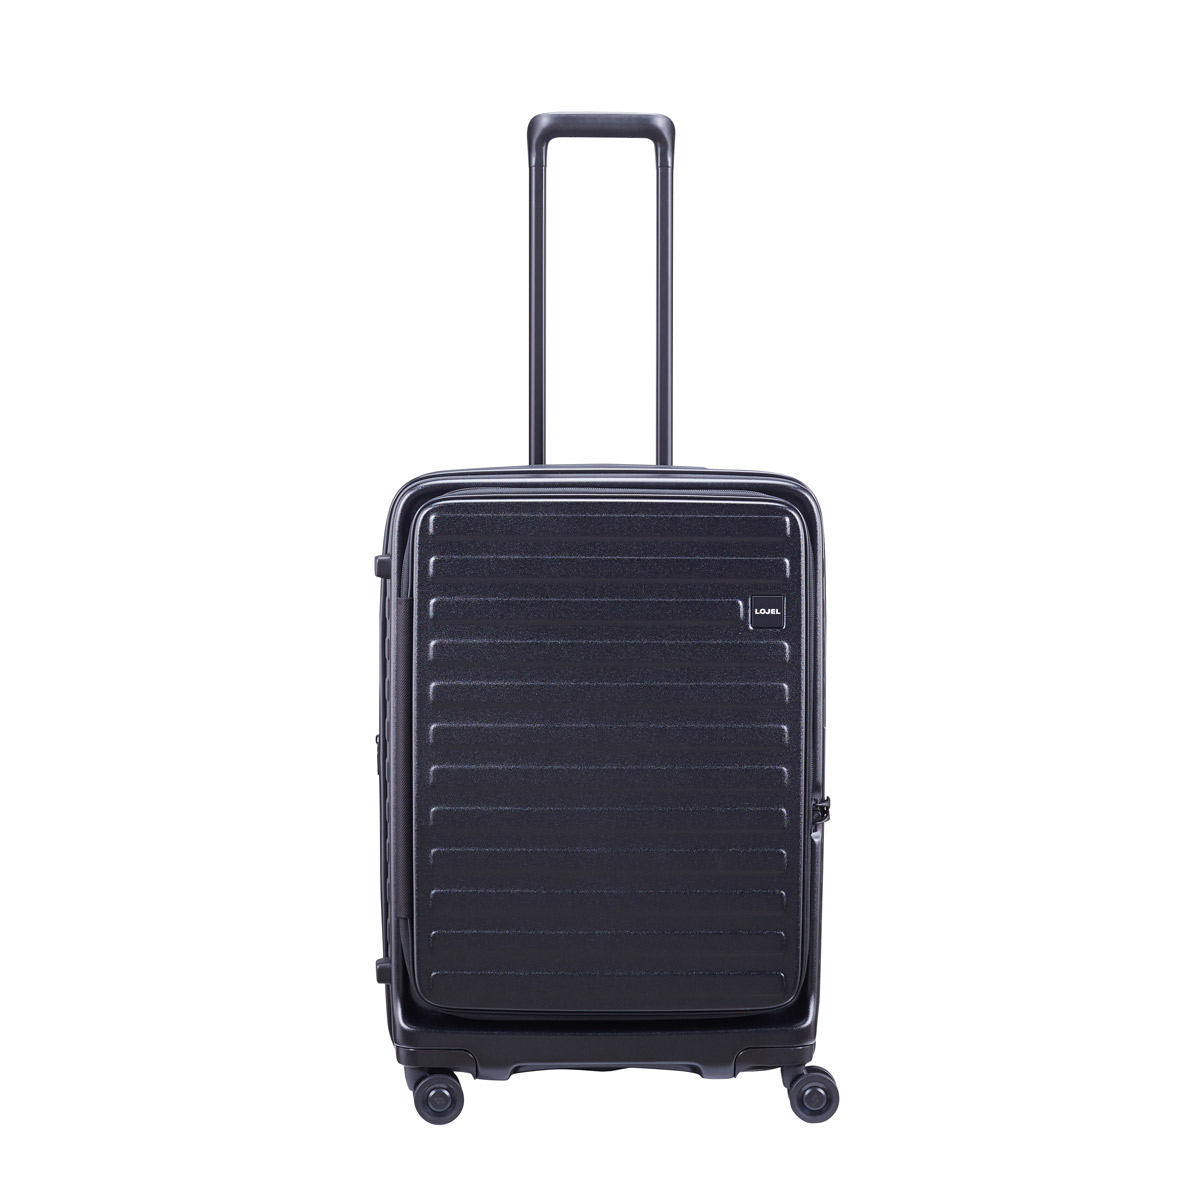 4ab3c2806df9 Cubo Luggage Set | LOJEL USA - Let Our Journeys Enrich Life